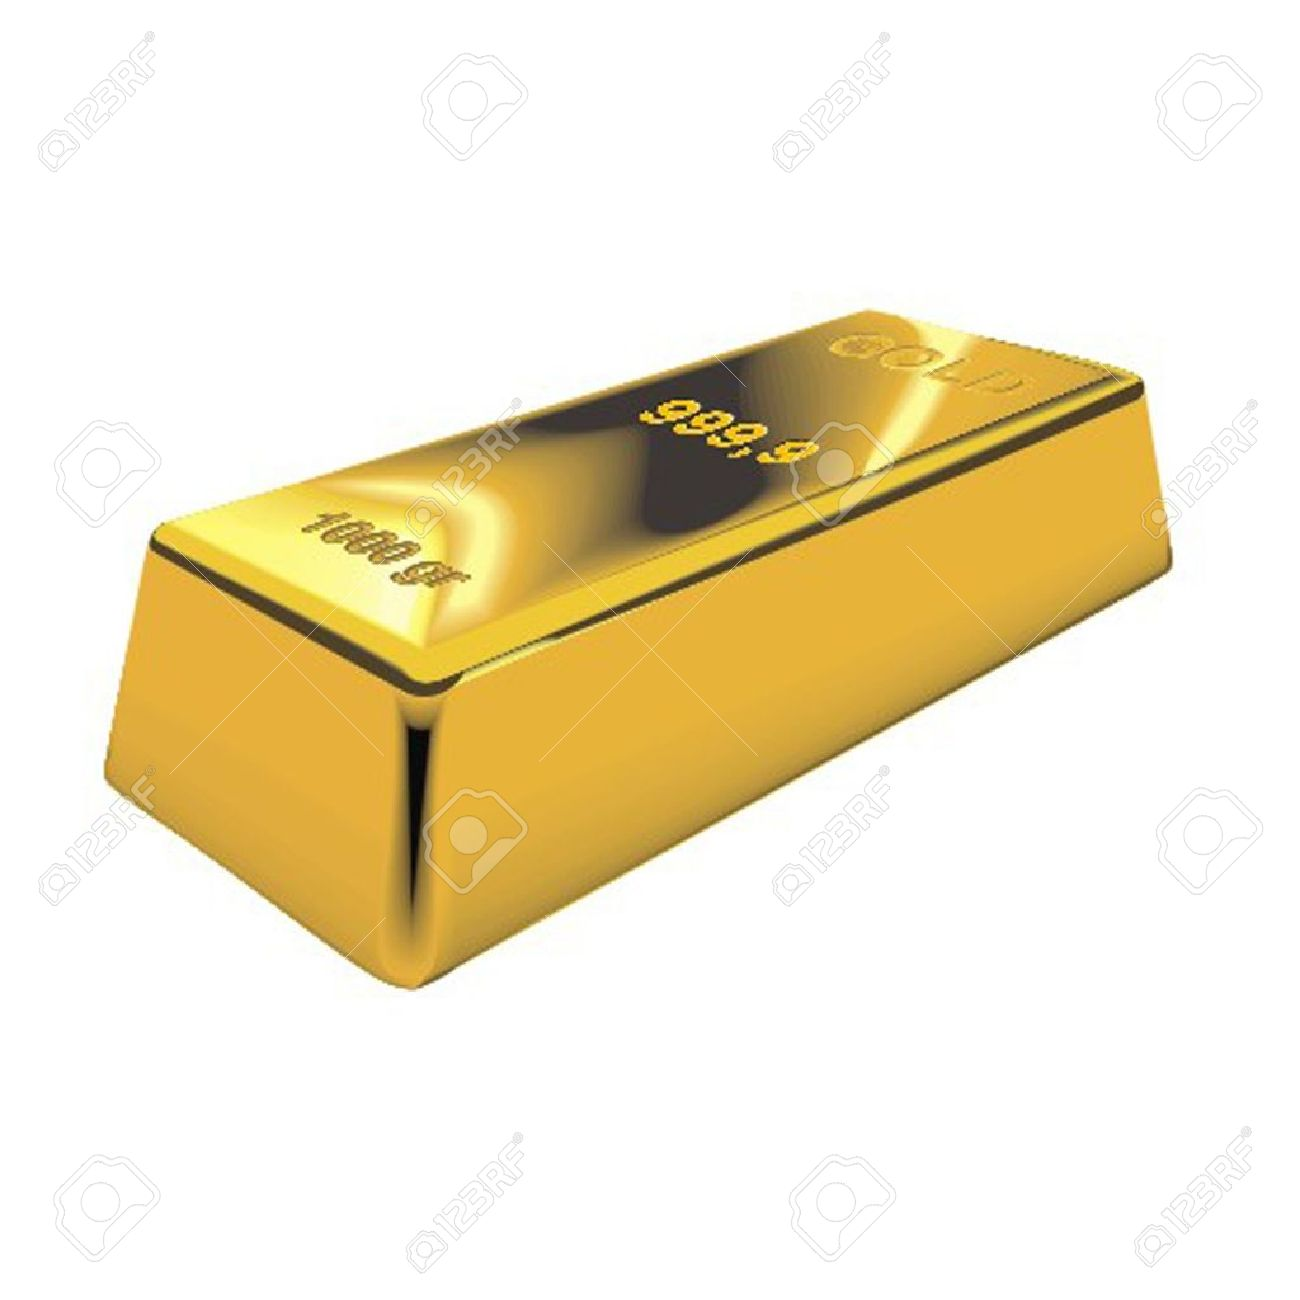 Gold bar clipart free.